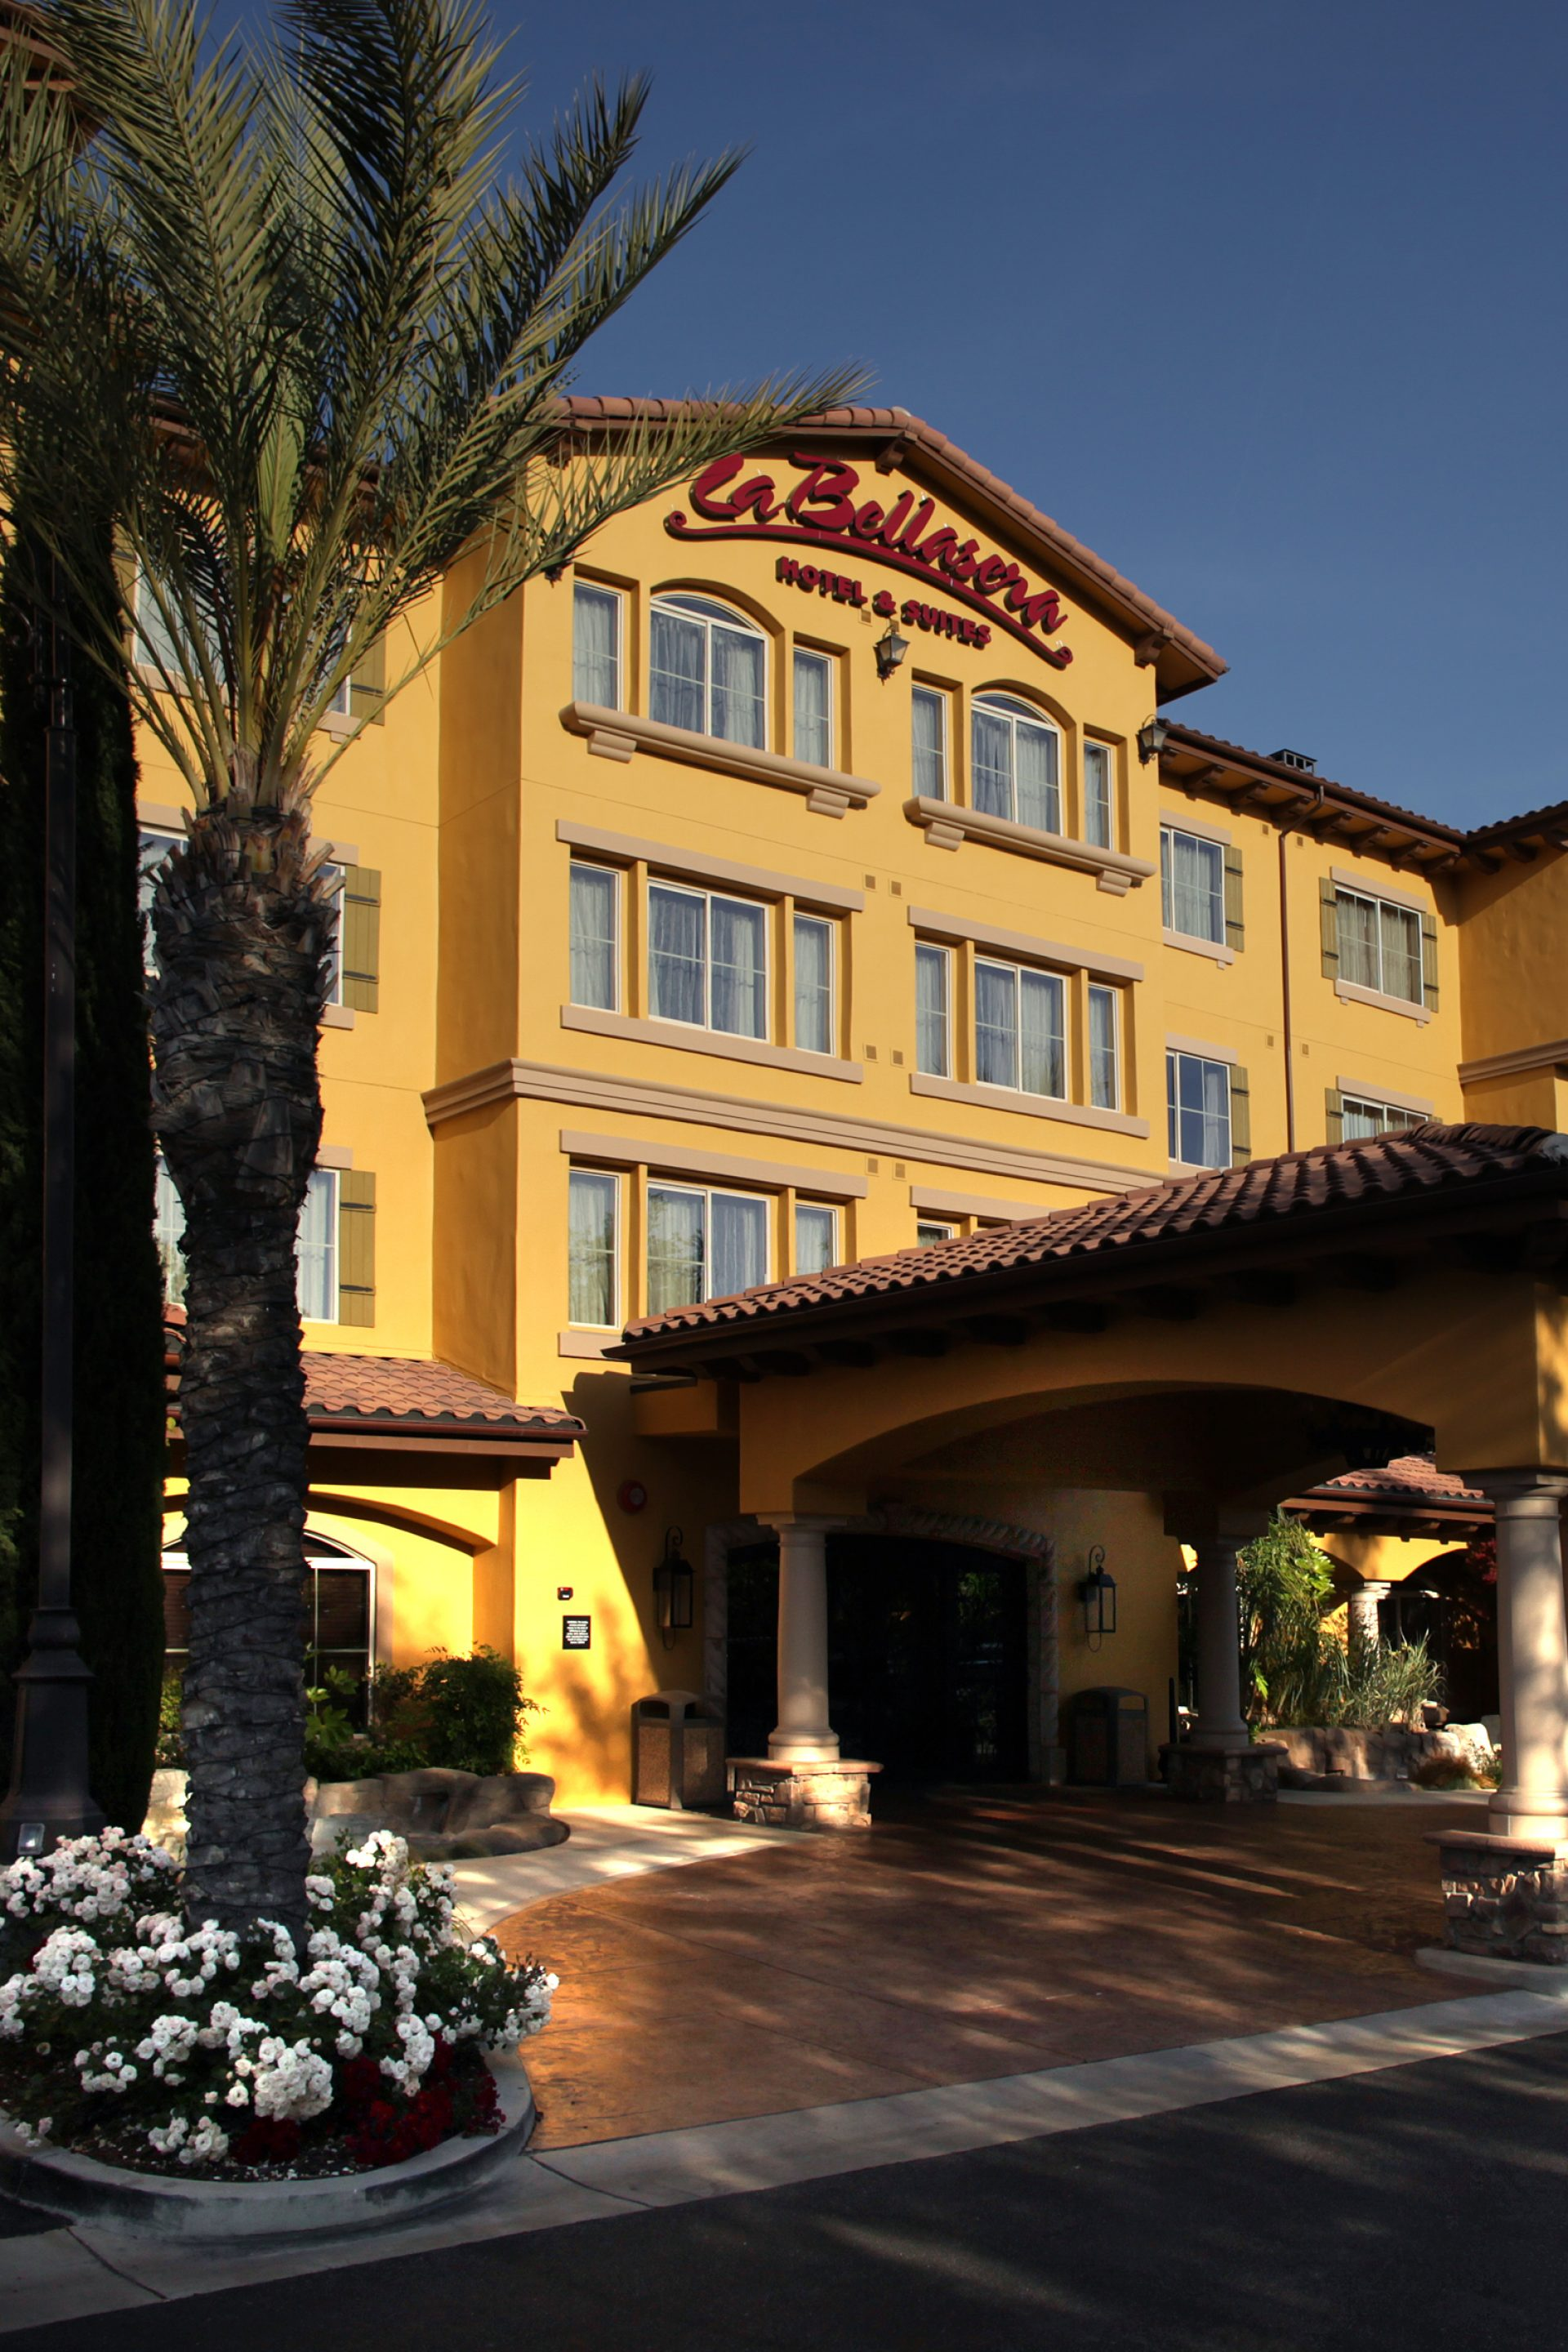 La Bellasera Hotel & Suites Entrance in Paso Robles